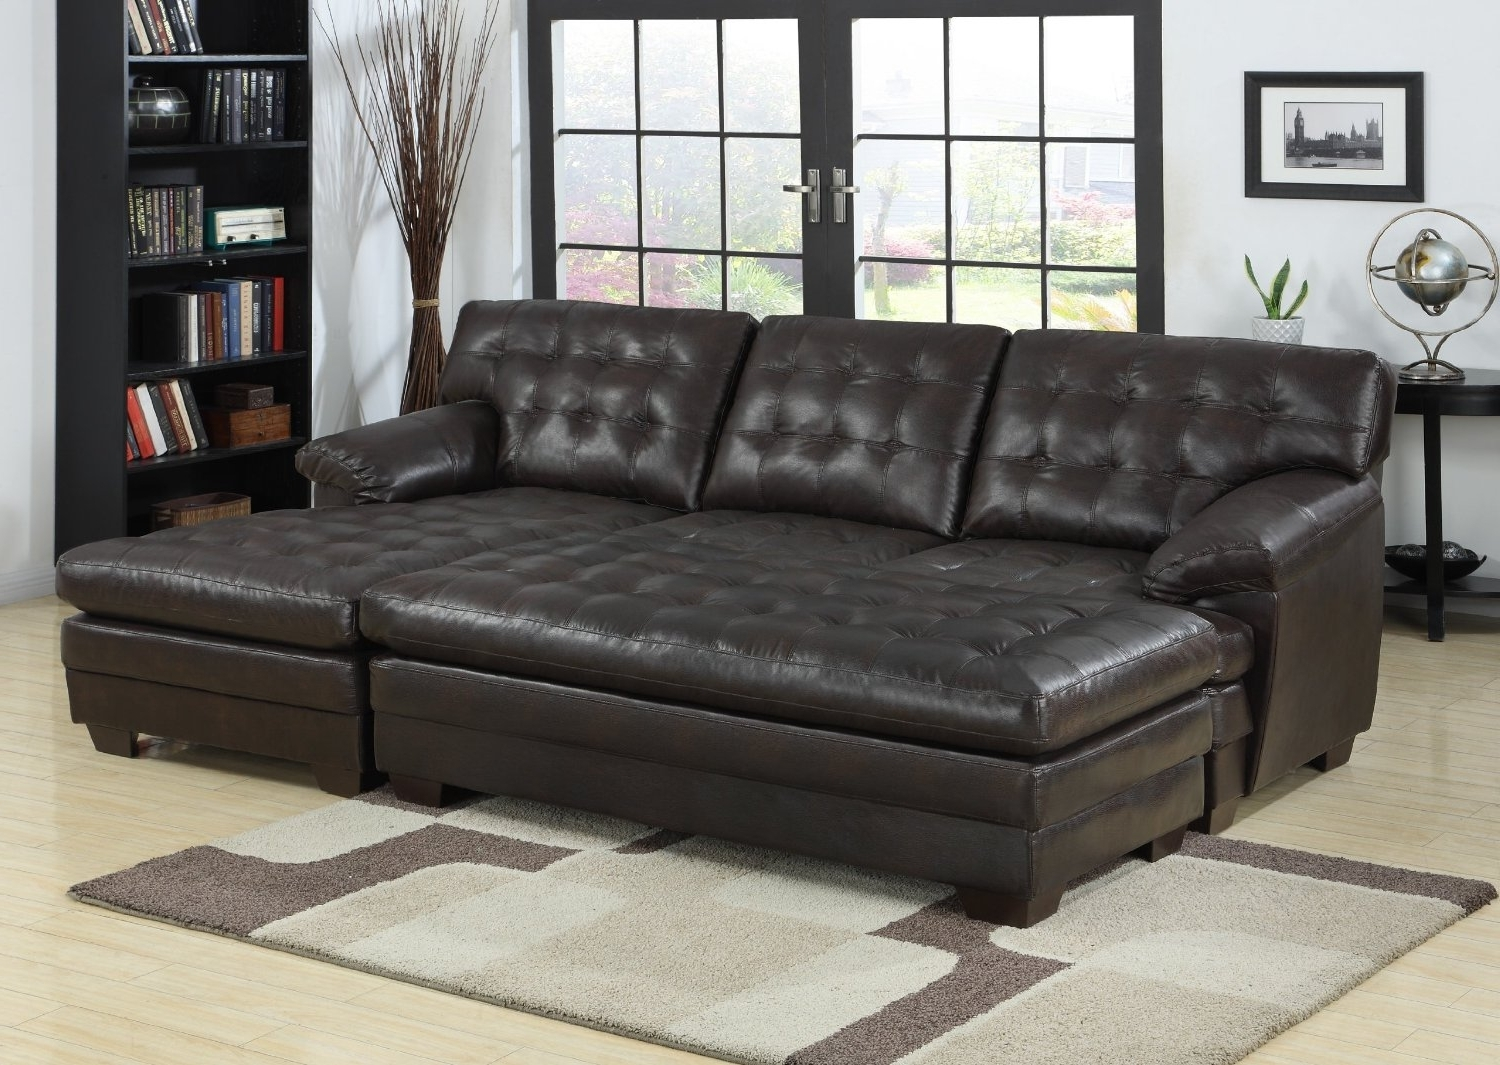 Double Chaise Lounge Sofa Image Gallery — The Home Redesign : The In 2017 Double Chaise Lounges For Living Room (View 12 of 15)